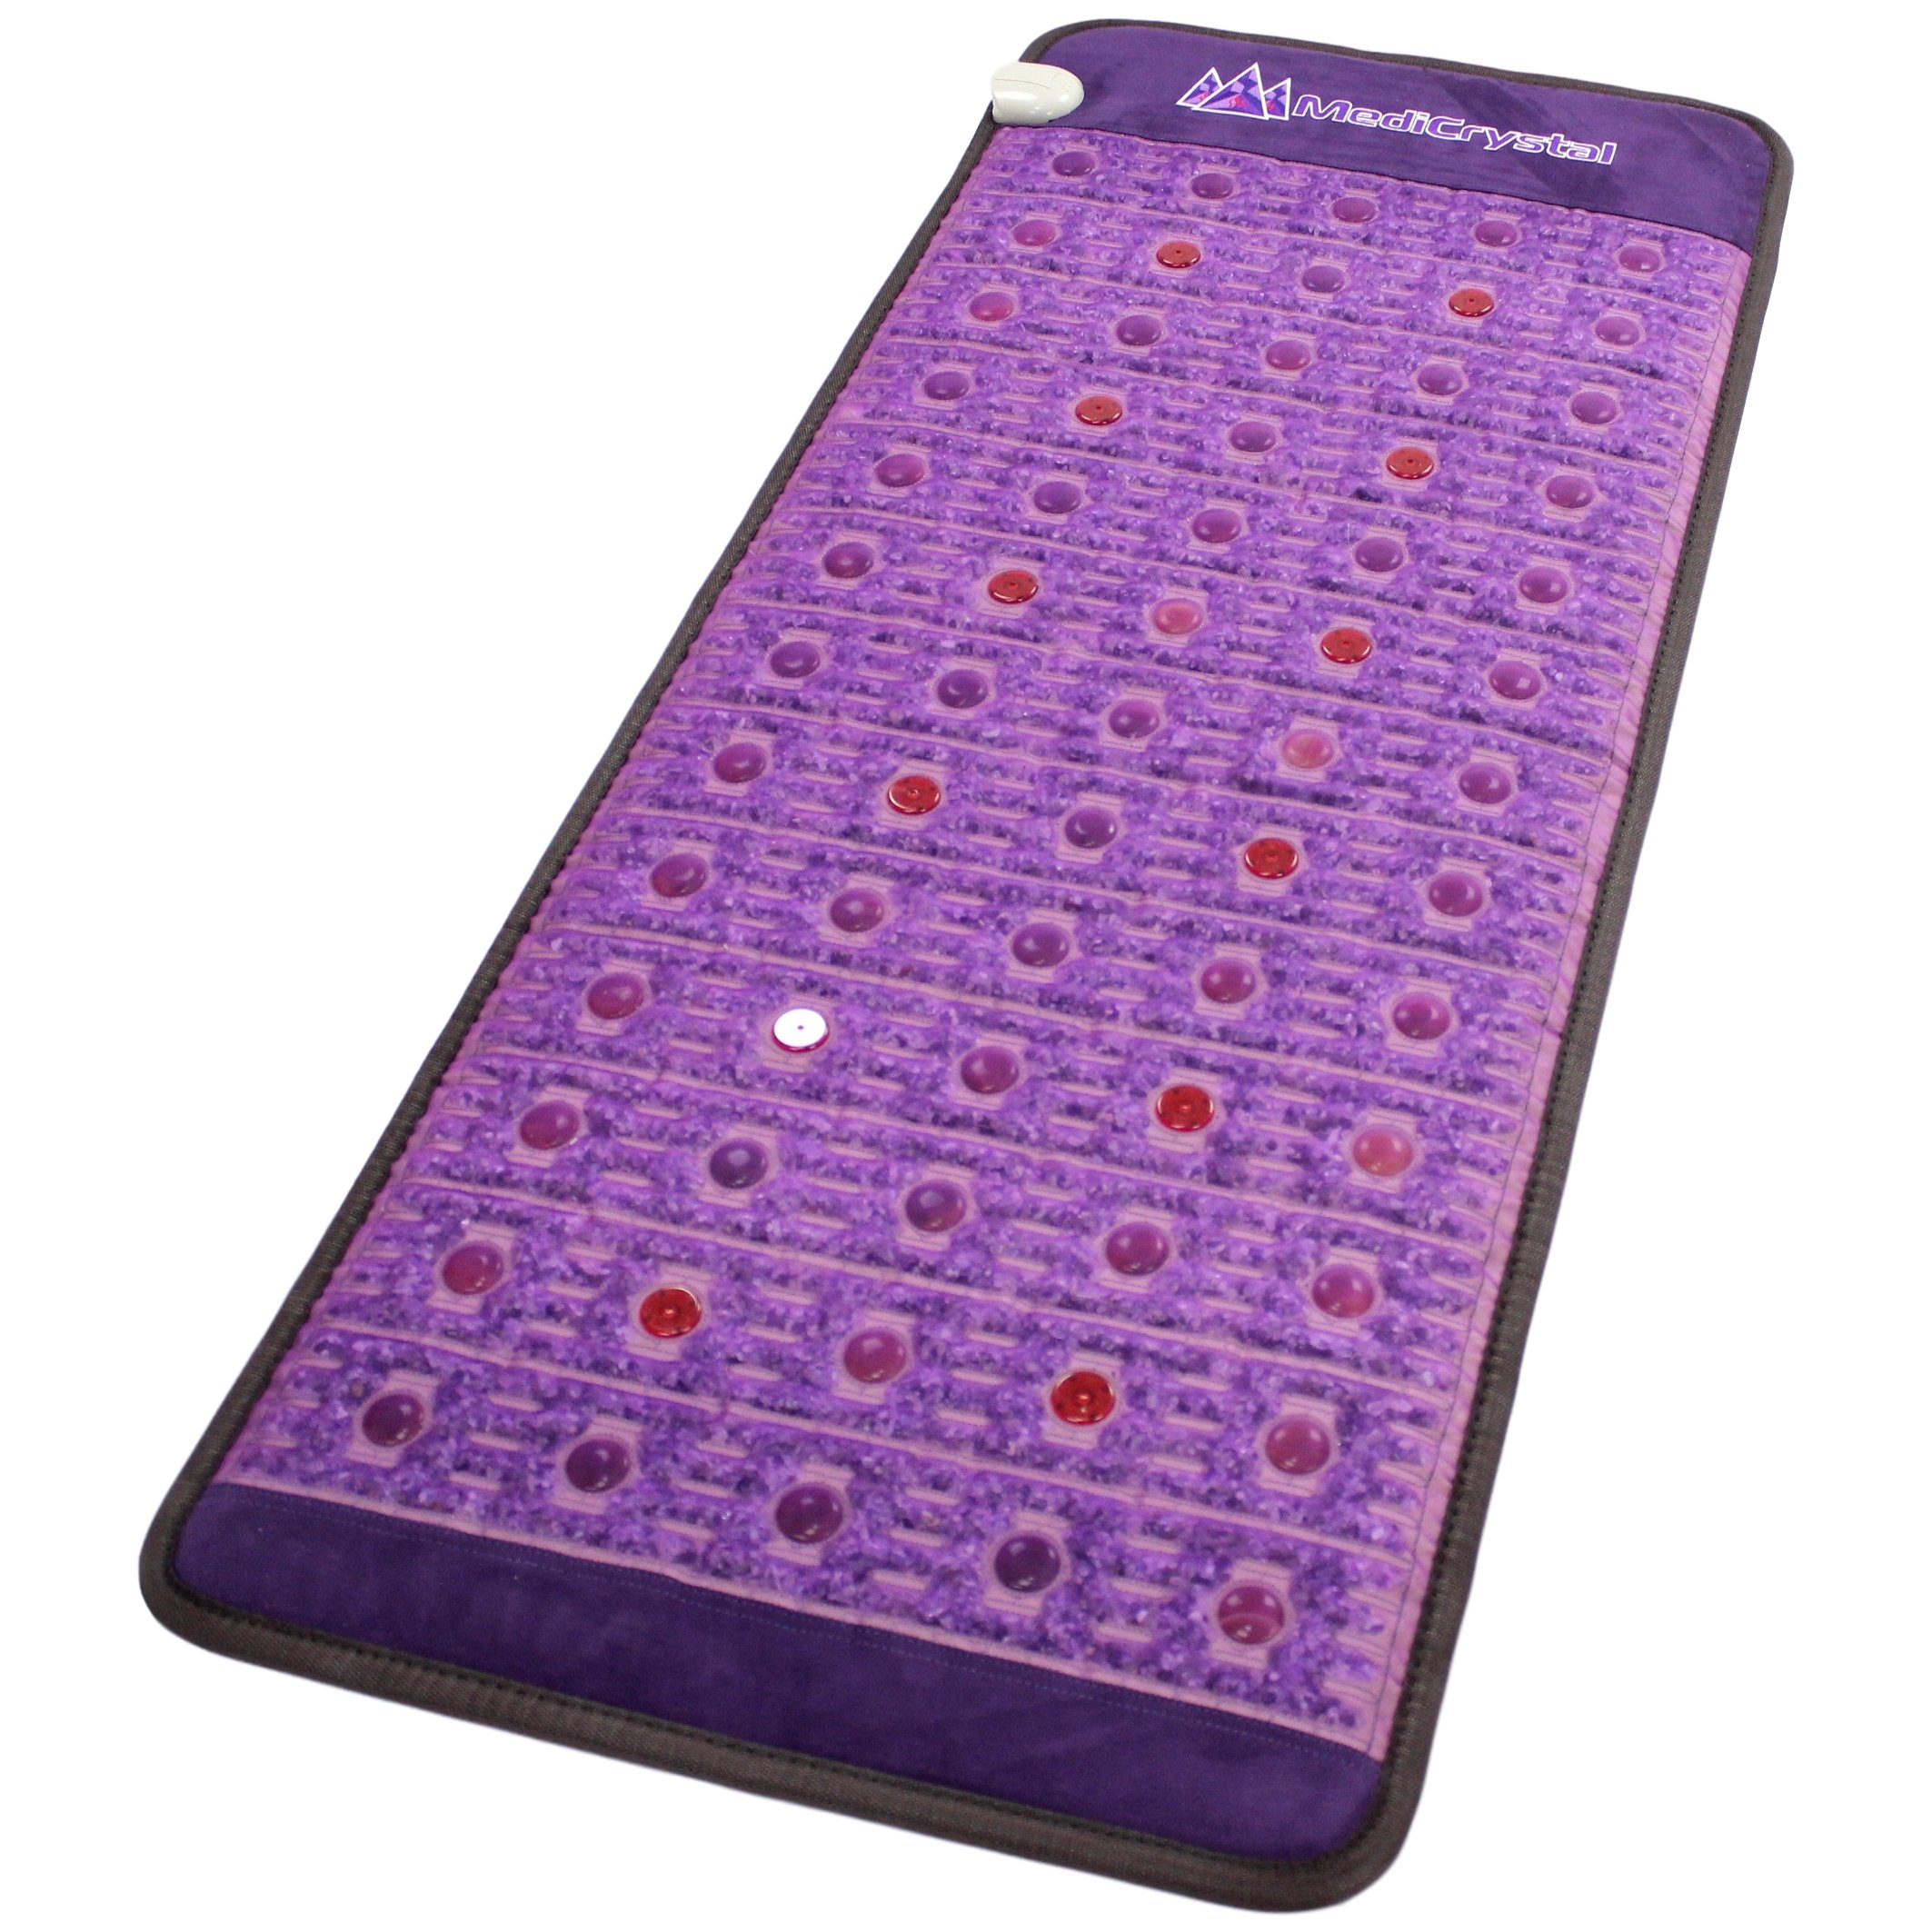 Far Infrared Amethyst Mat + Natural Agate Gems - FIR Heat - Negative Ion - Red Light Photon Therapy - 10Hz PEMF Bio Magnetic Pulsation - FDA Registered Manufacturer - Purple (Midsize 59''L x 24''W) by MediCrystal (Image #3)